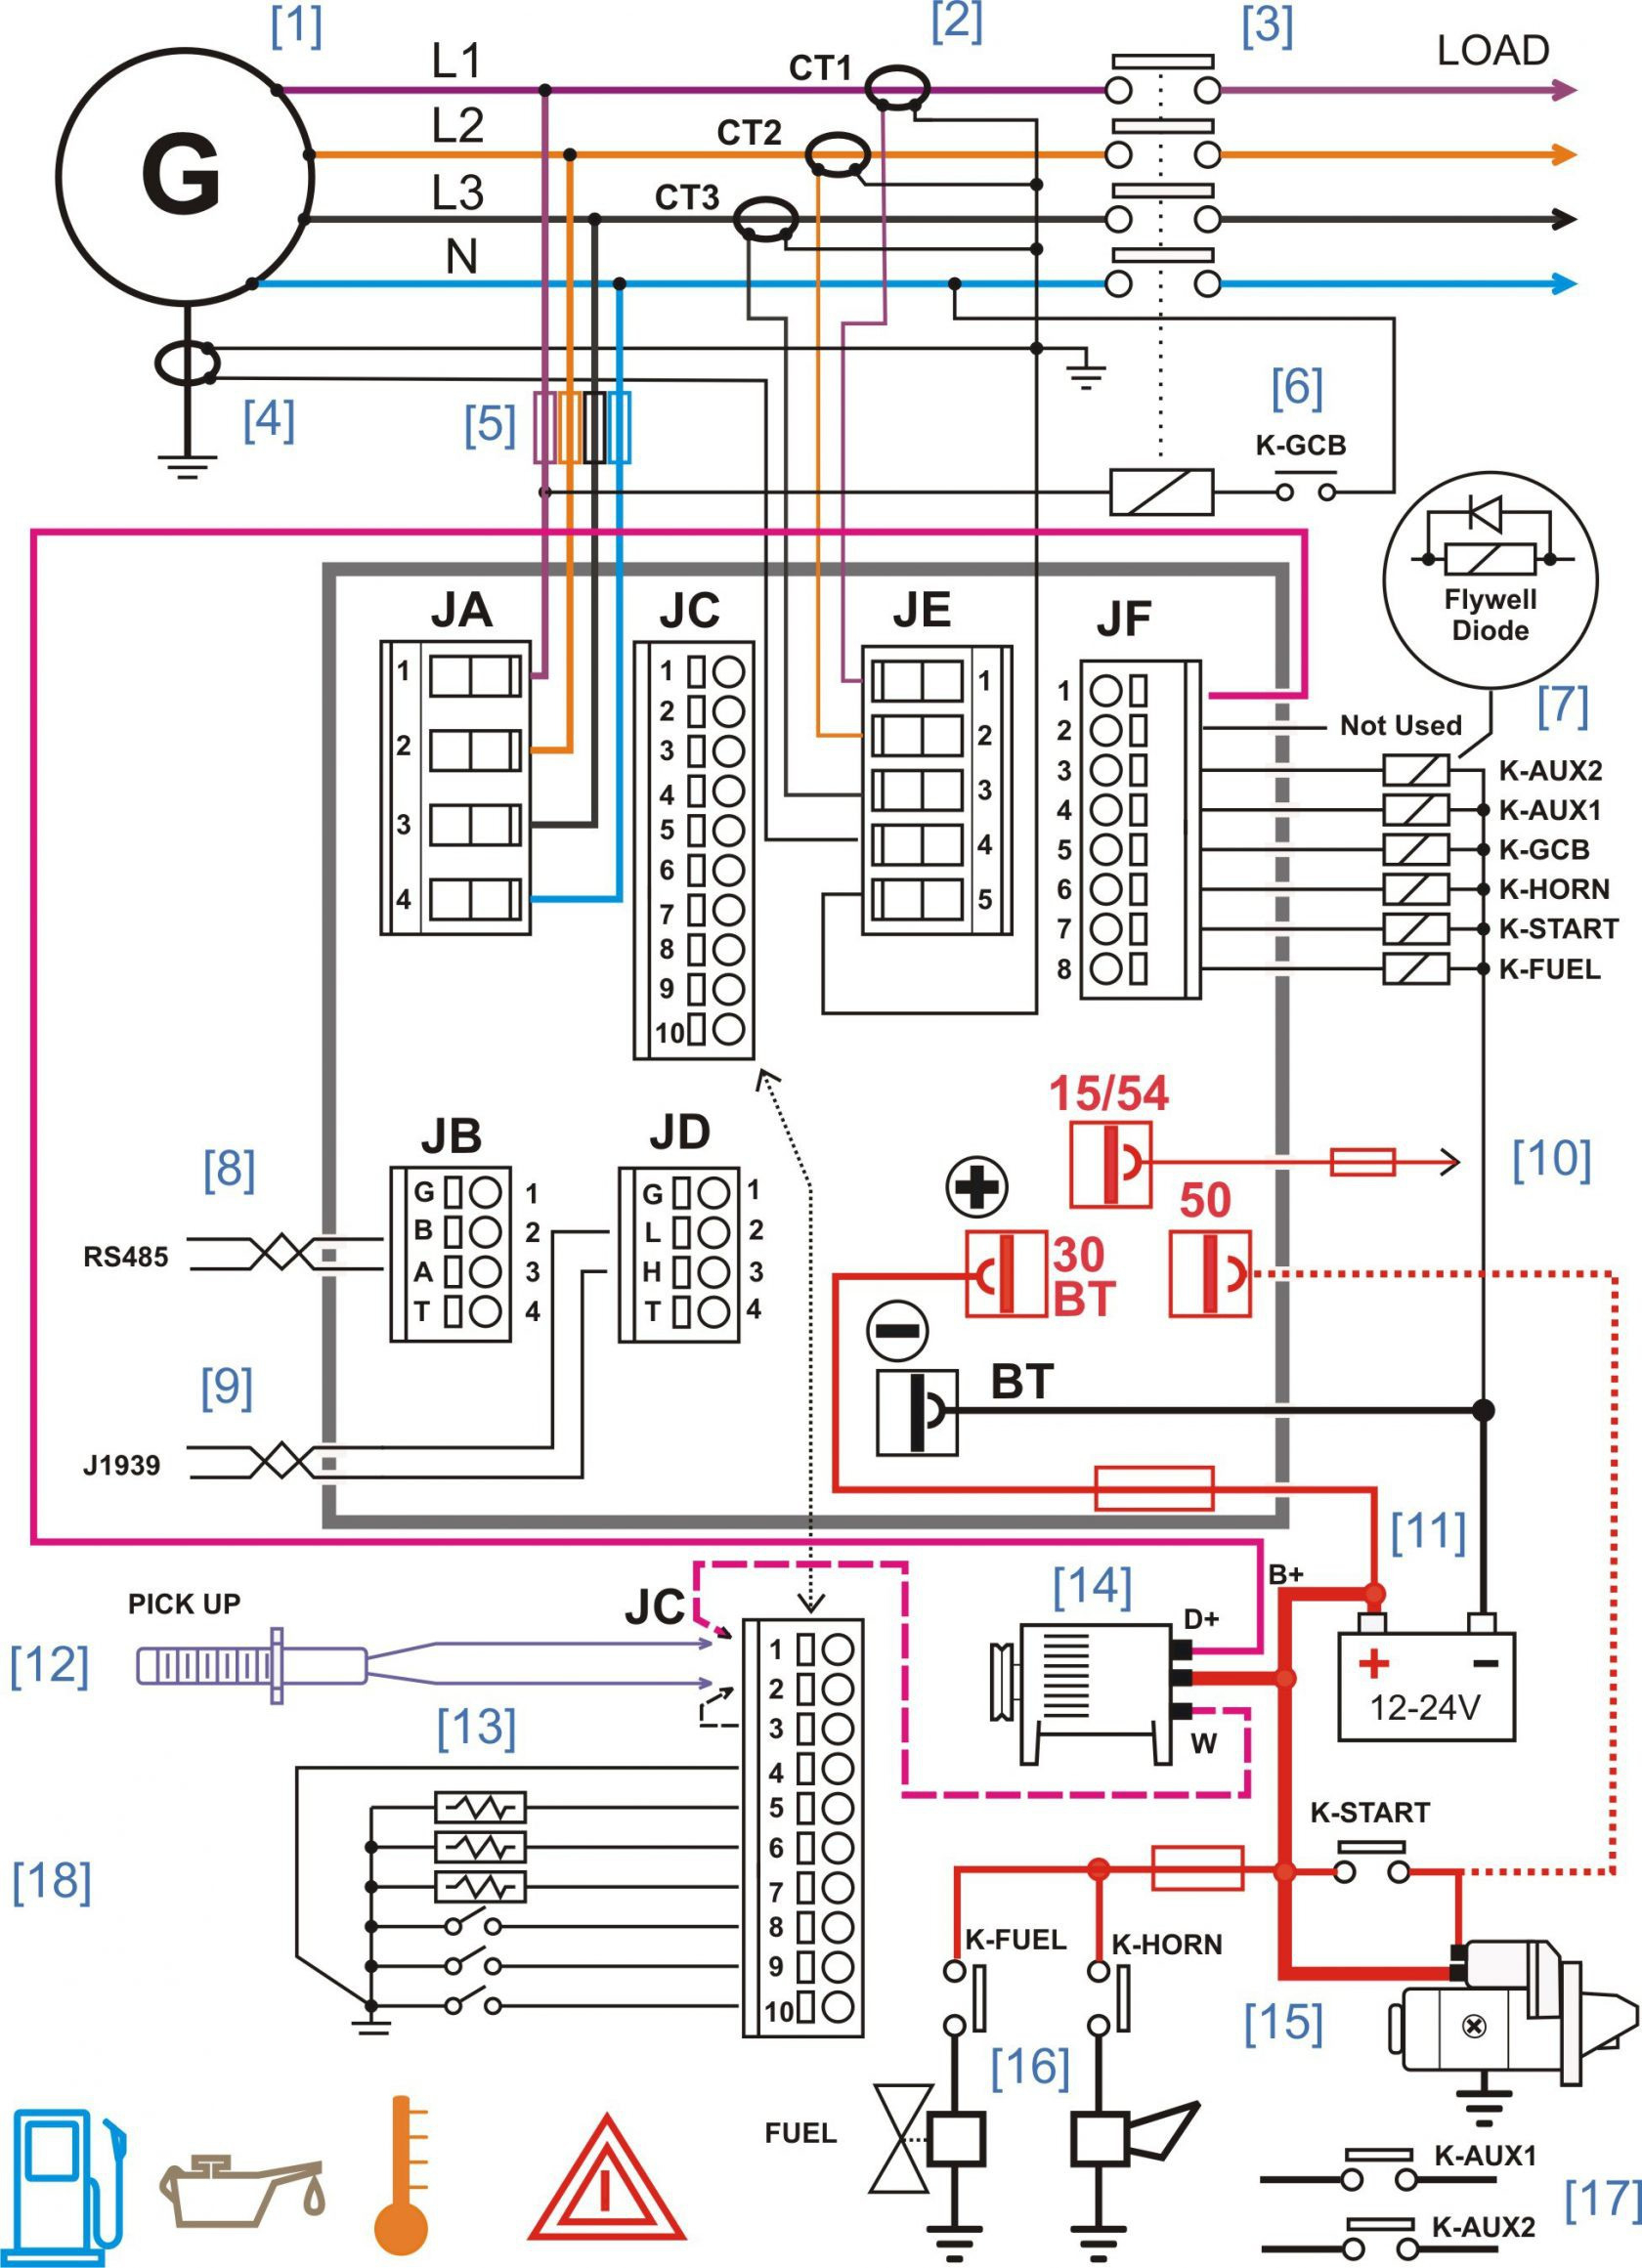 reliance csr302 wiring diagram Download-delco bose gold series wiring diagram Collection Full Size of whisperedamp Speaker Wiring Diagram Secrets 9-j